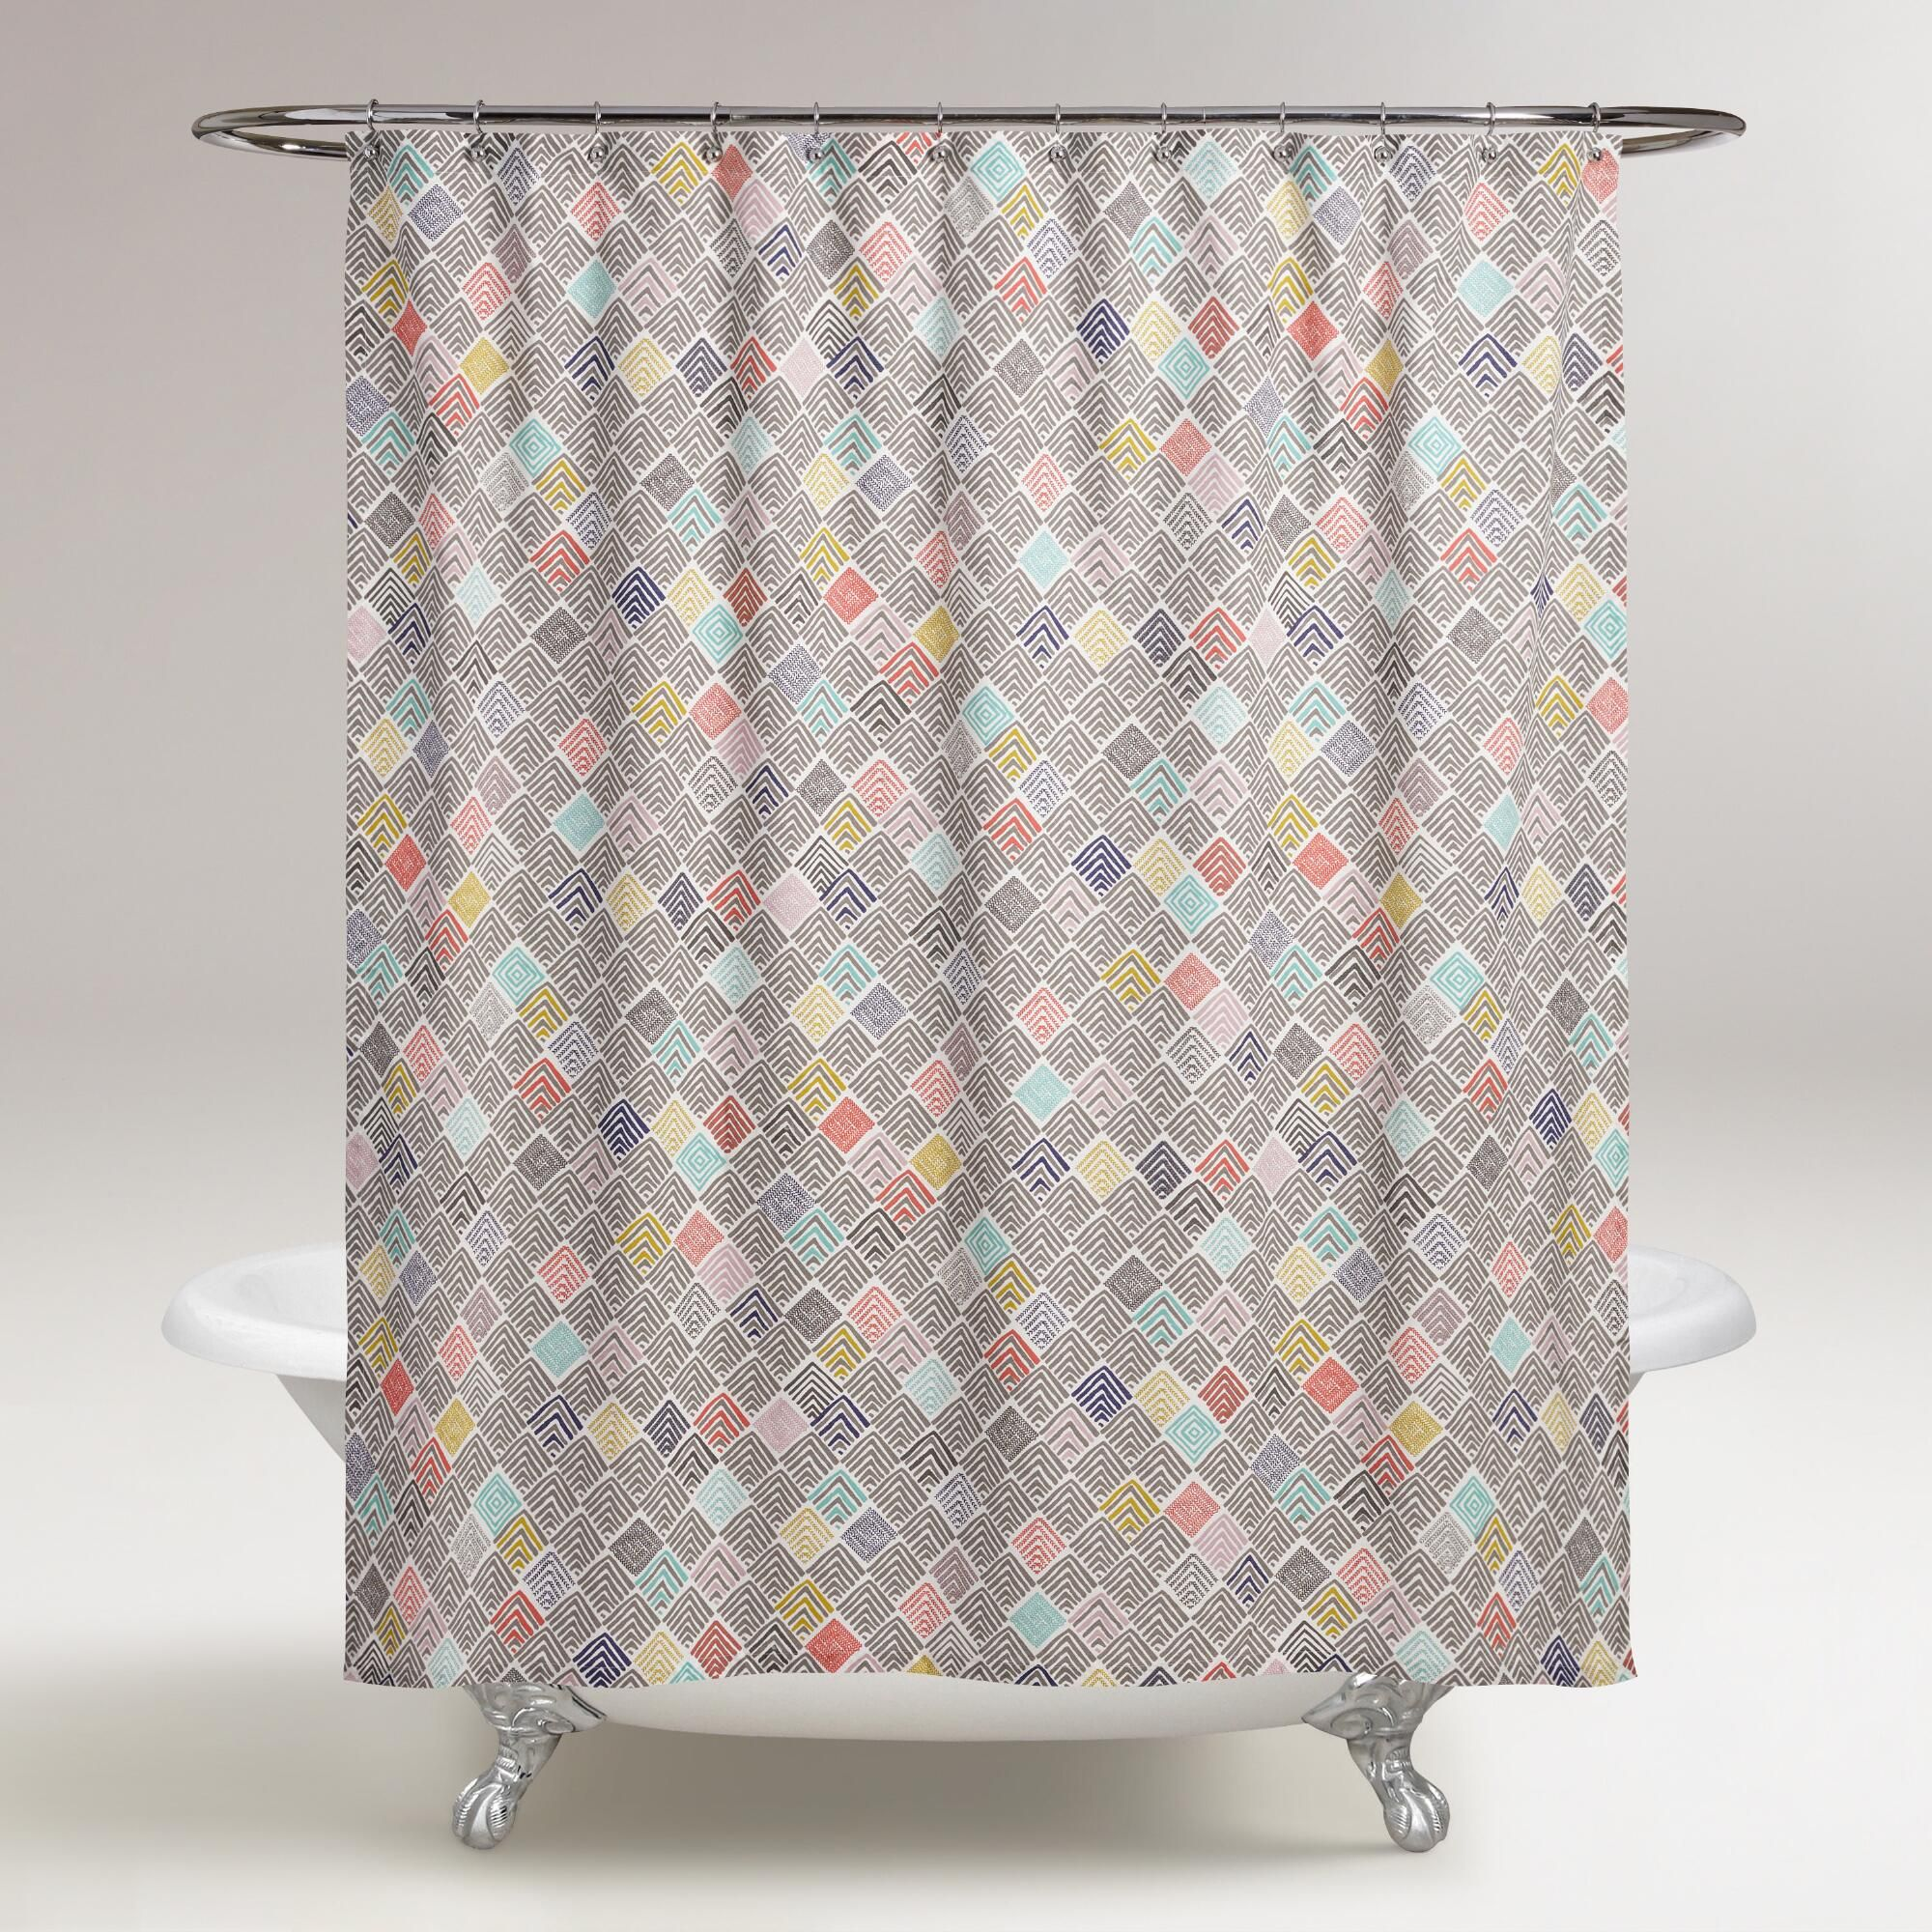 Easily Add A Pop Of Graphic Color To Any Bathroom With This